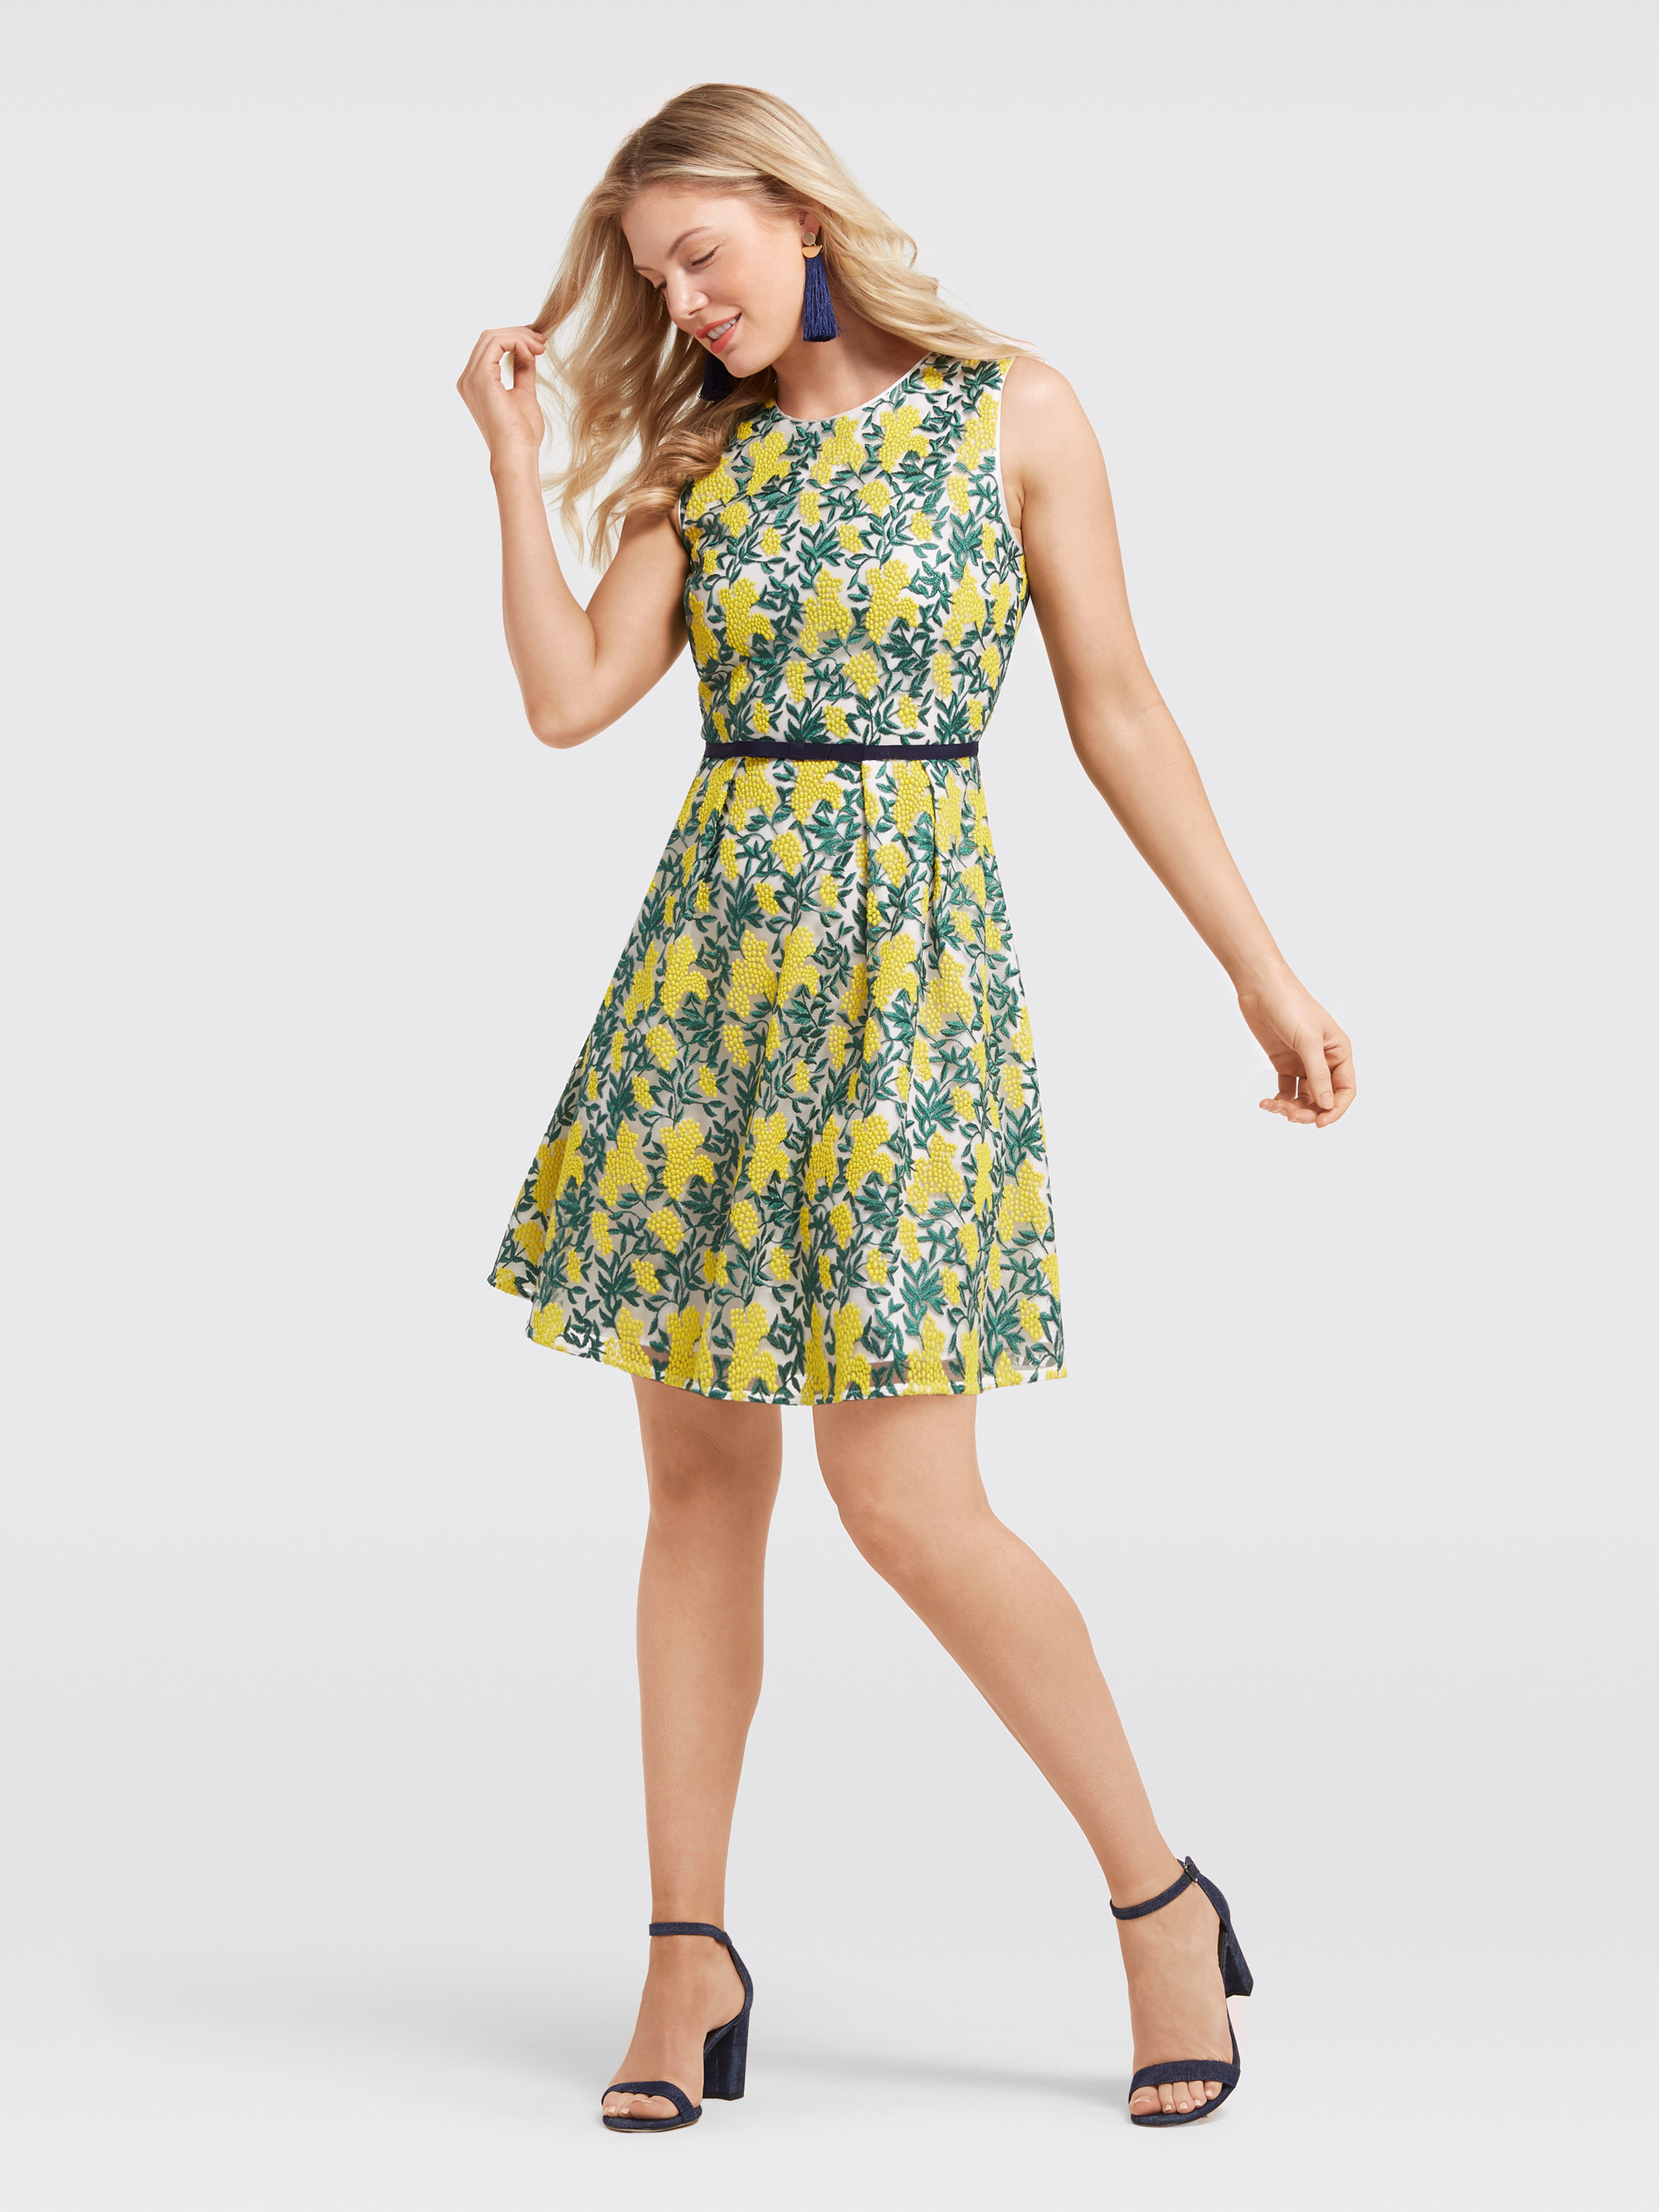 f0c43beb6b76a Draper James - Collection Embroidered Madeline Dress   Products ...